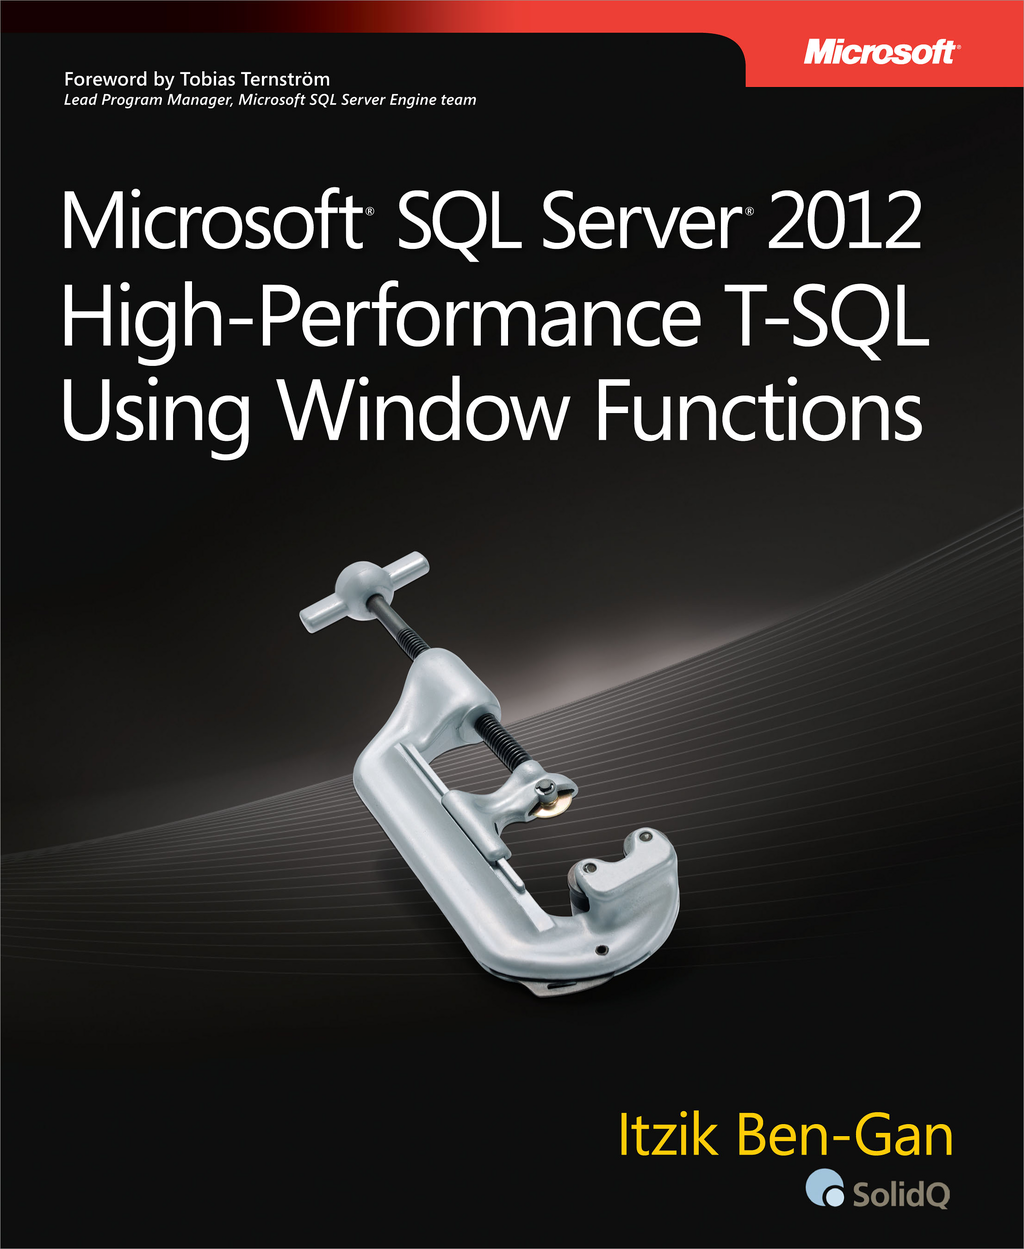 Microsoft® SQL Server® 2012 High-Performance T-SQL Using Window Functions By: Itzik Ben-Gan